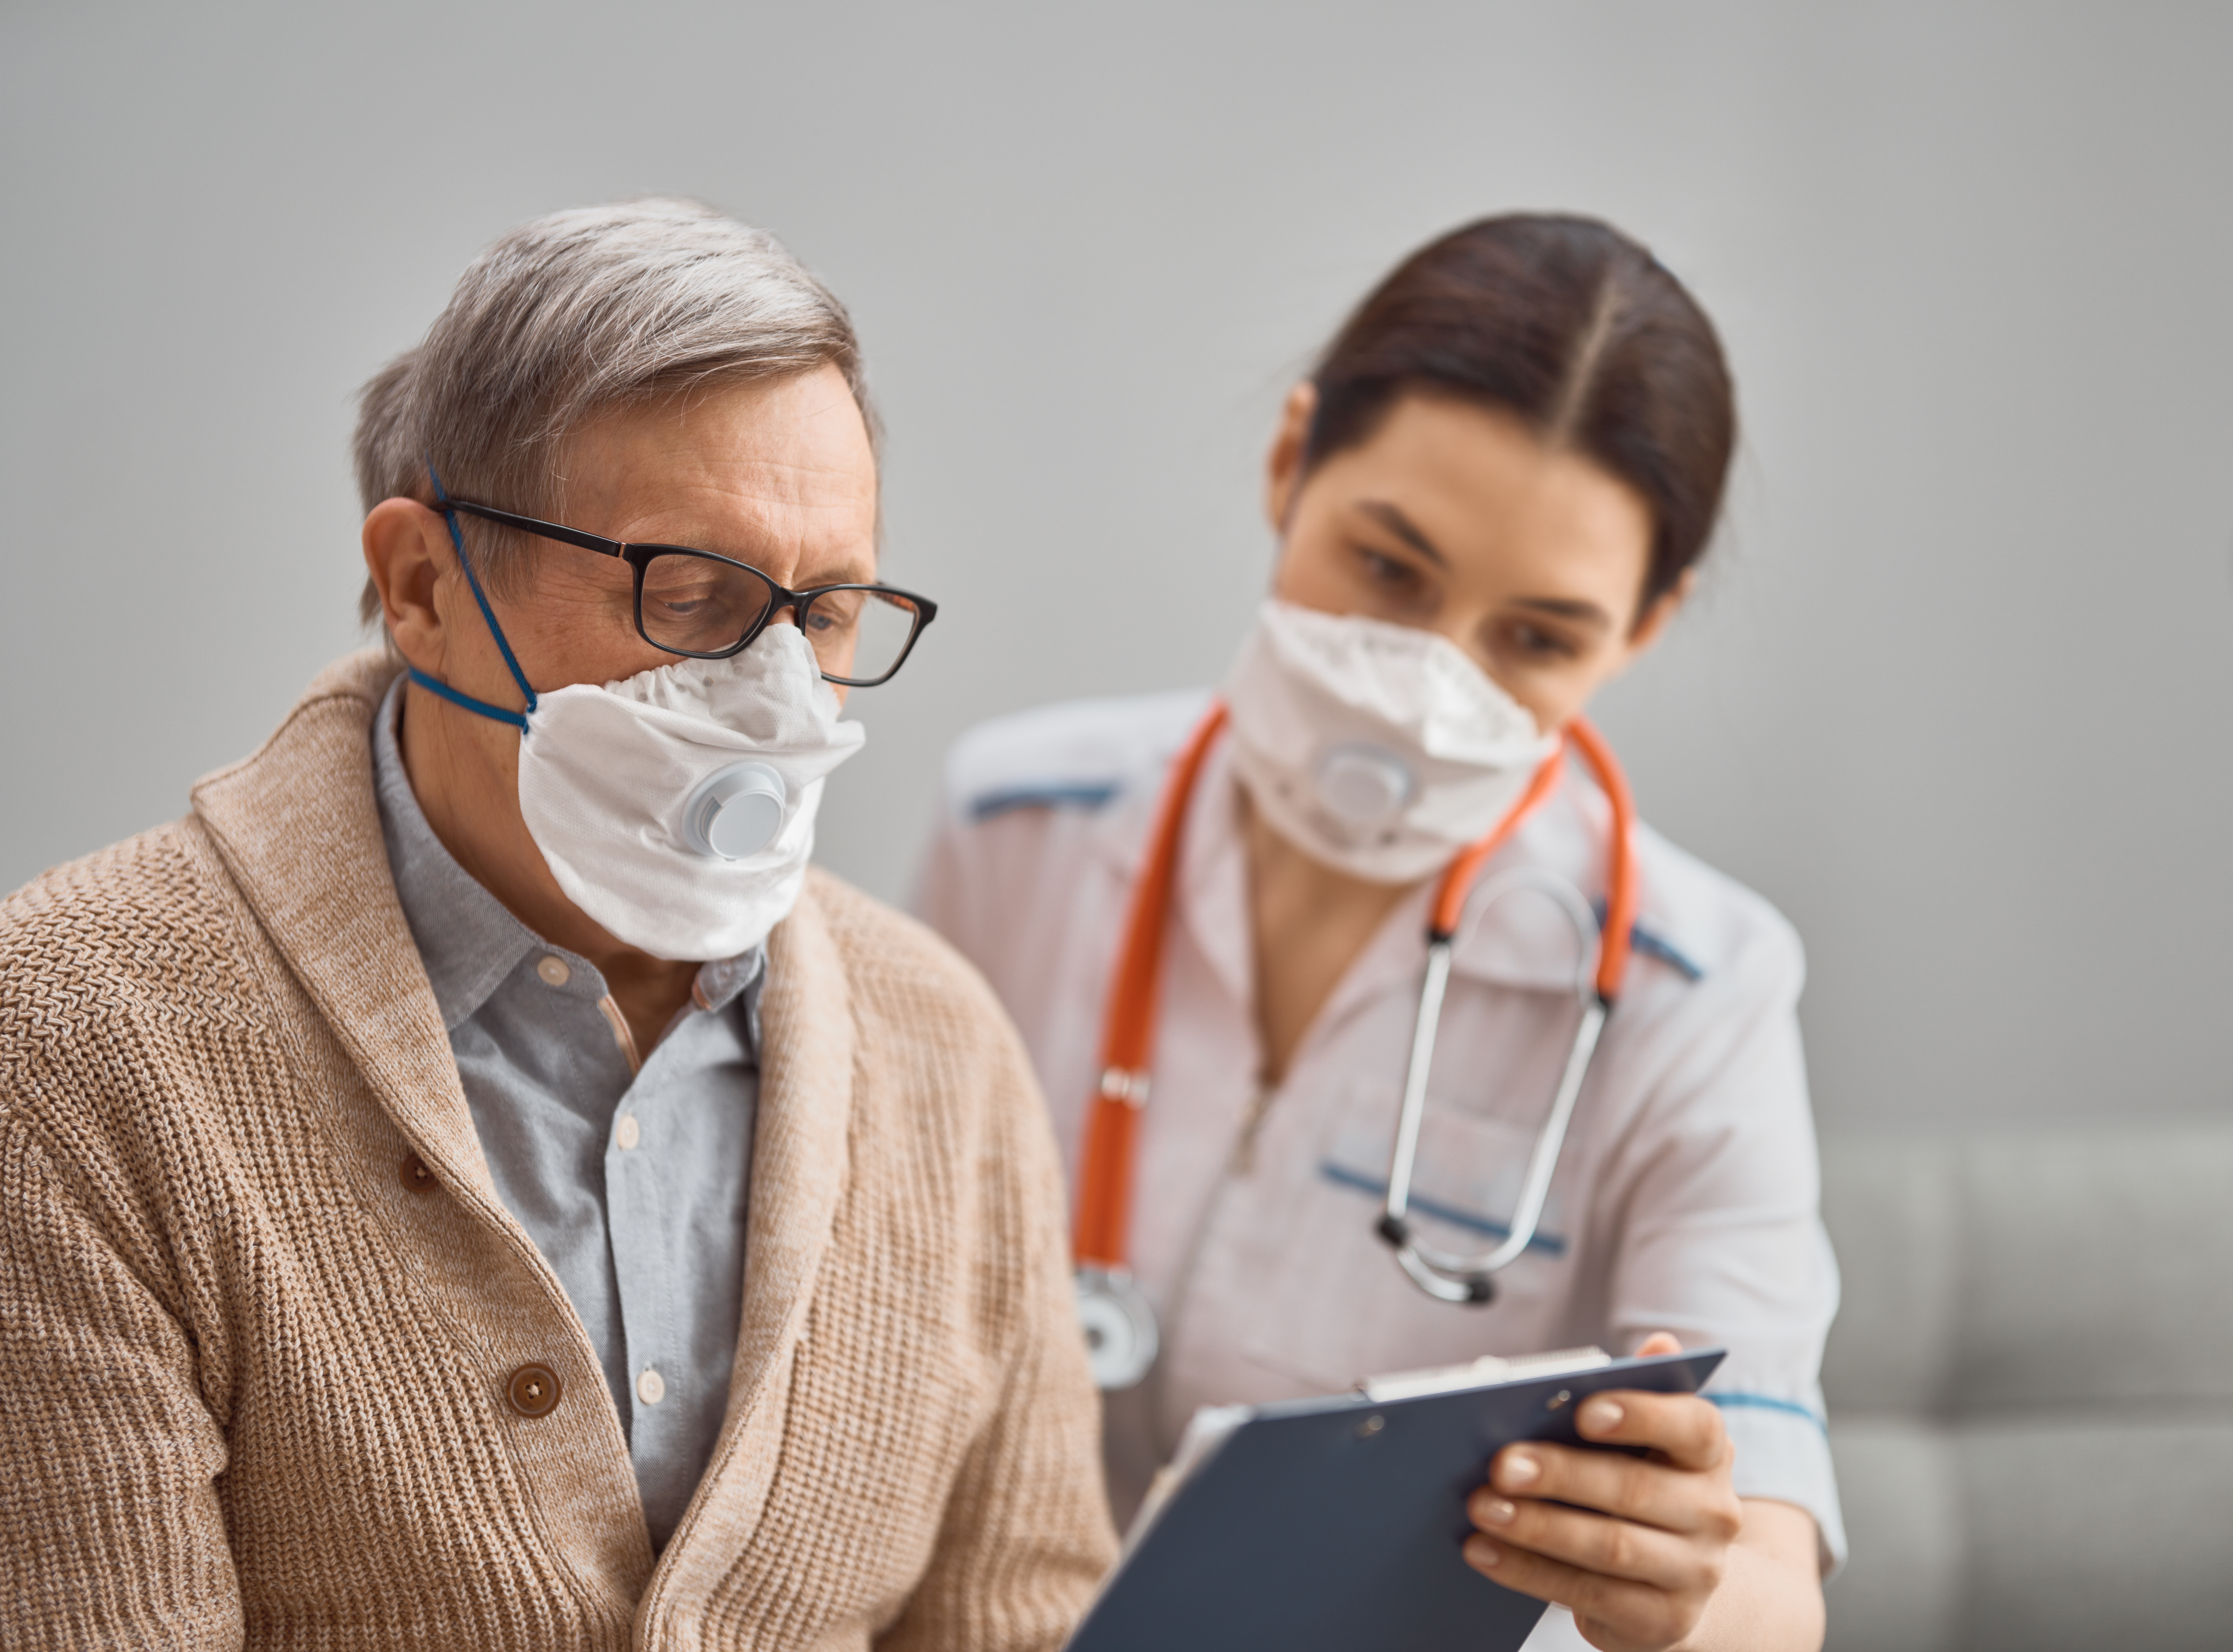 Why are Seniors High Risk for COVID-19?